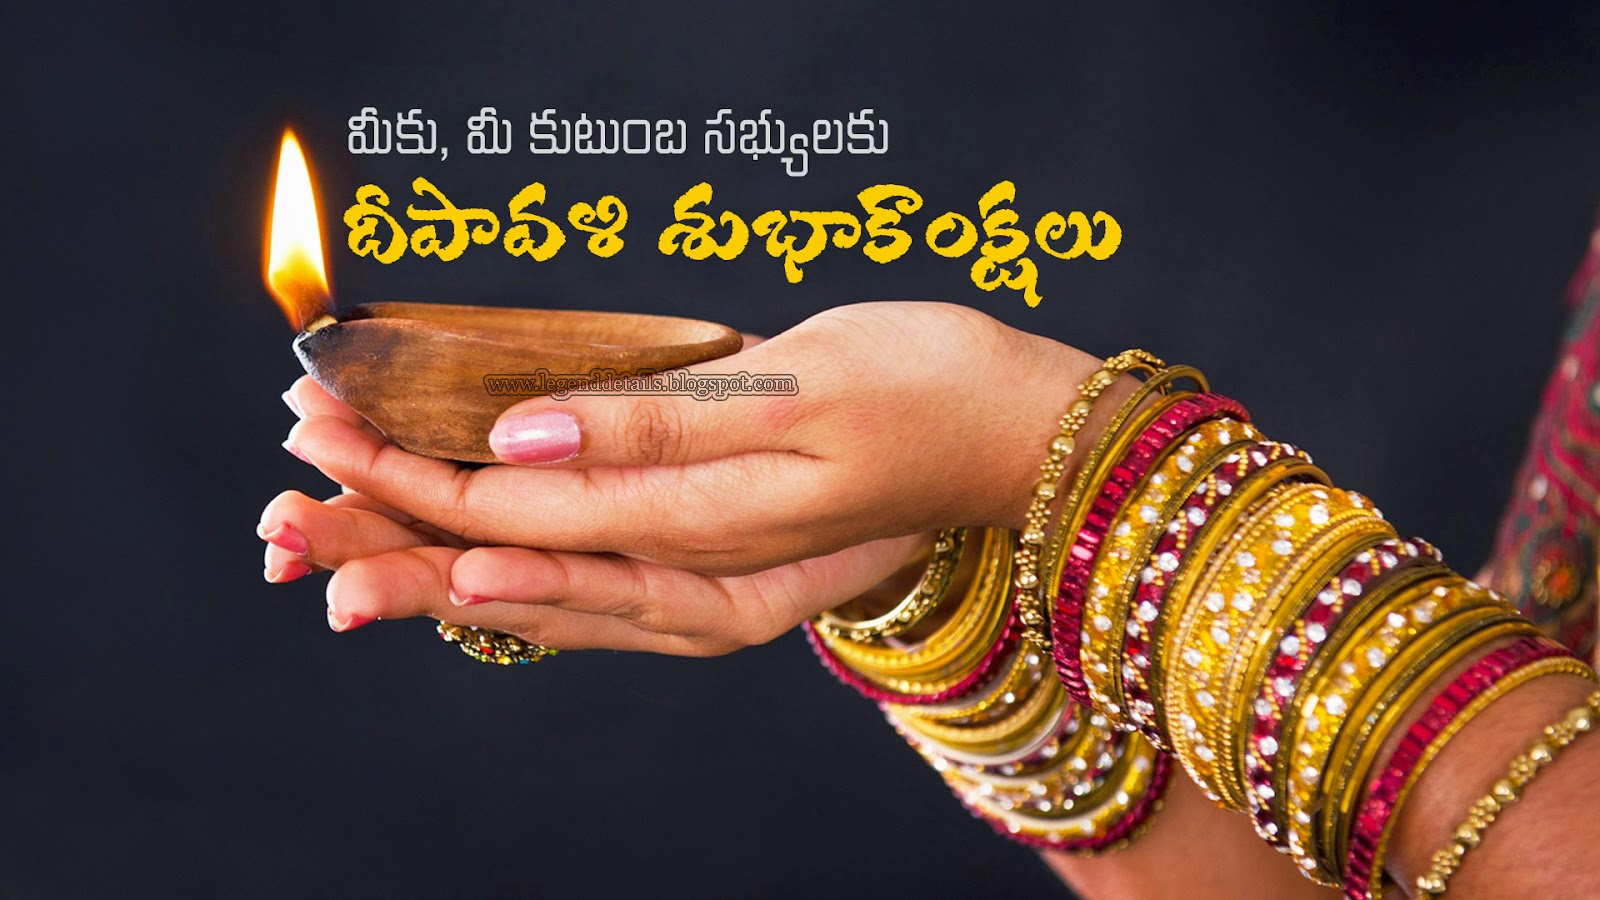 Diwali SMS Messages in Telugu